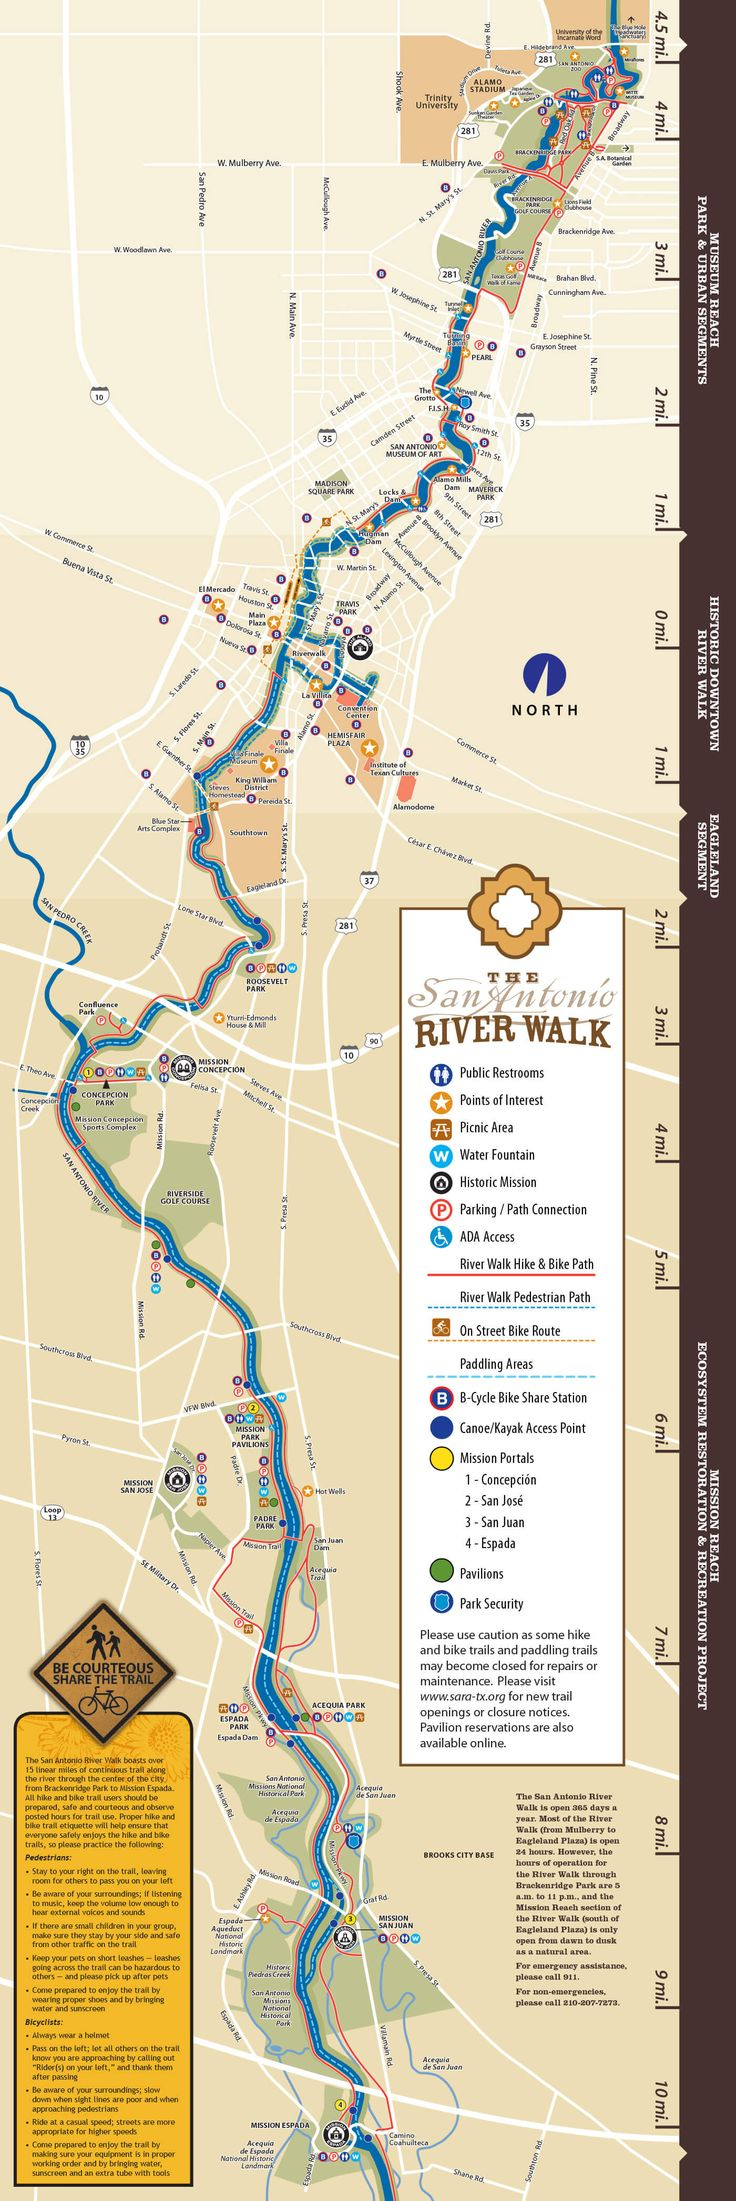 Best Ideas About San Antonio Texas Map On Pinterest San - Map of colorado river in texas